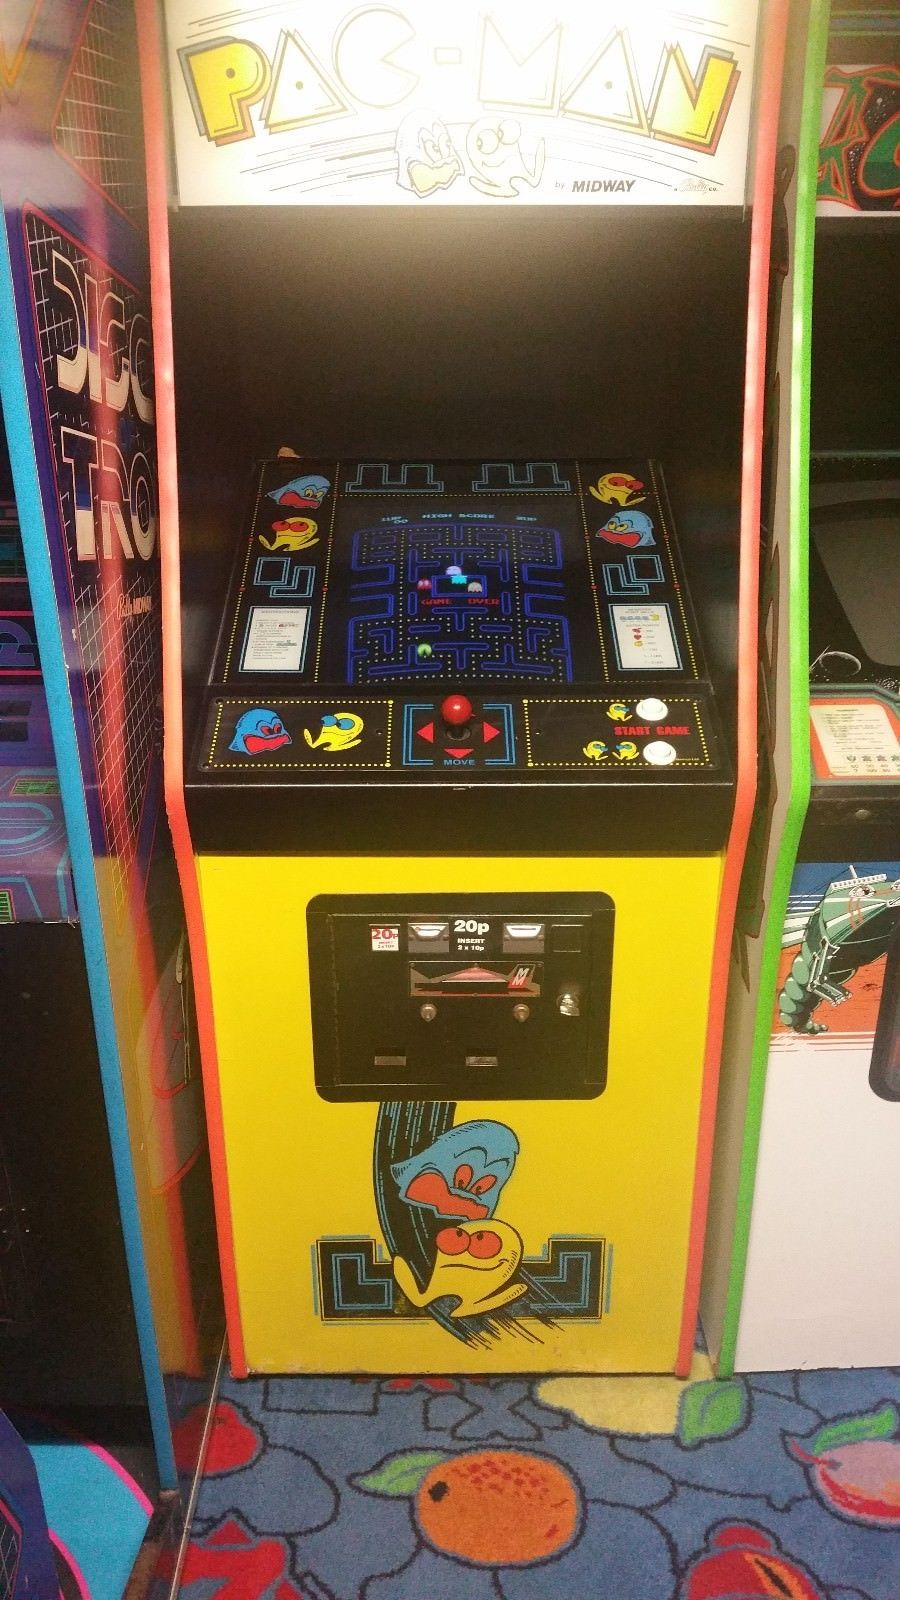 Bally/Midway PACMAN arcade machine for sale on eBay (as of